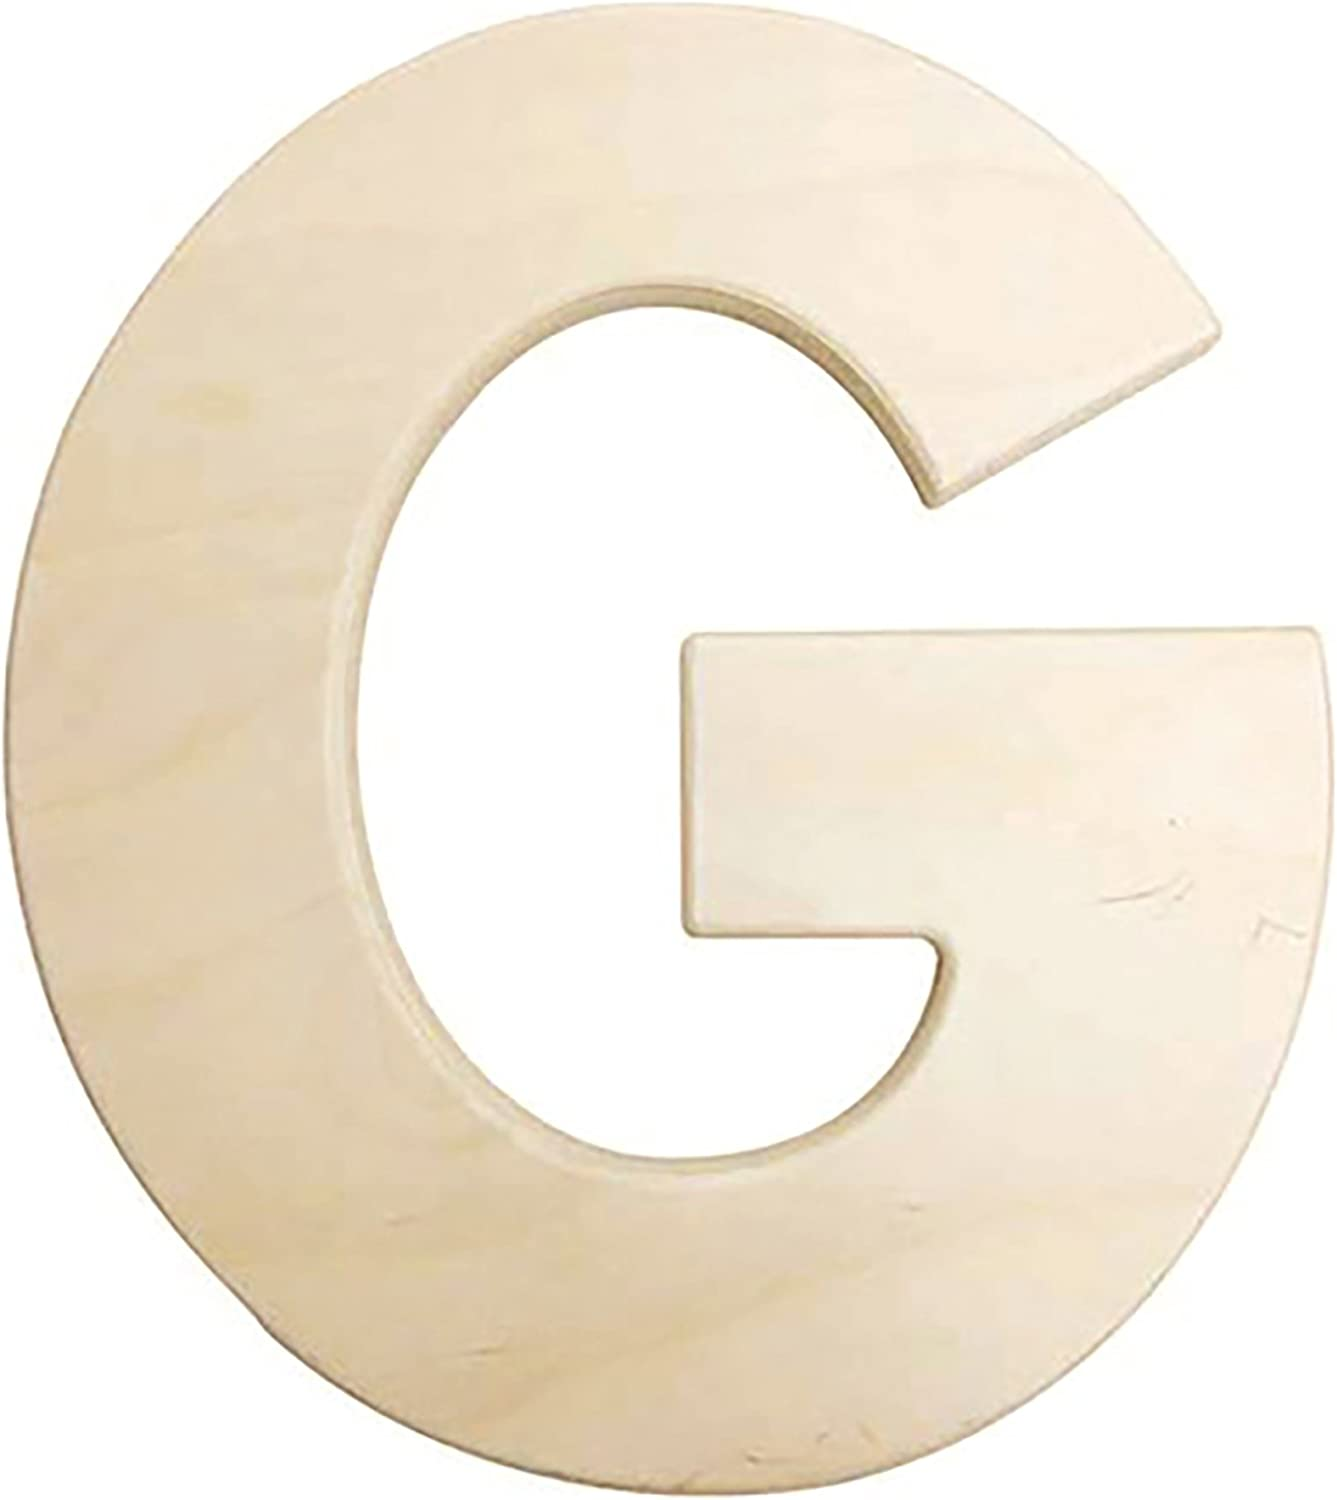 Darice U0993-G Bold Solid Wood Letter, Capital G, 12 in